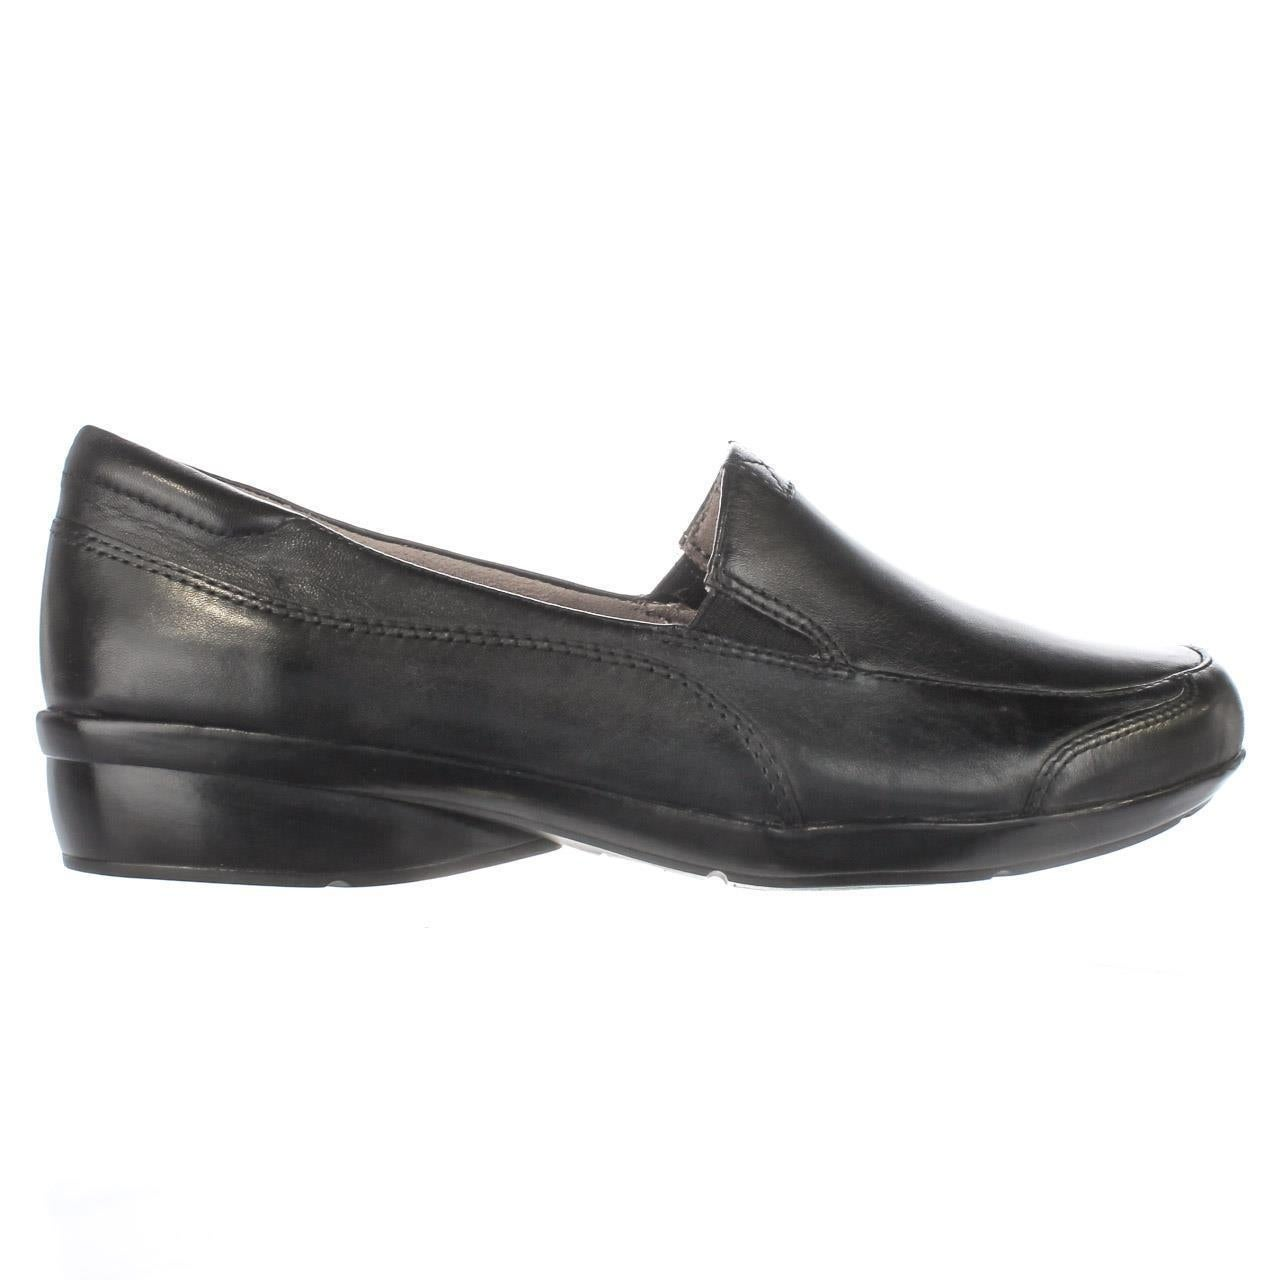 4216a160d5a Shop naturalizer Channing Slip-On Comfort Loafers